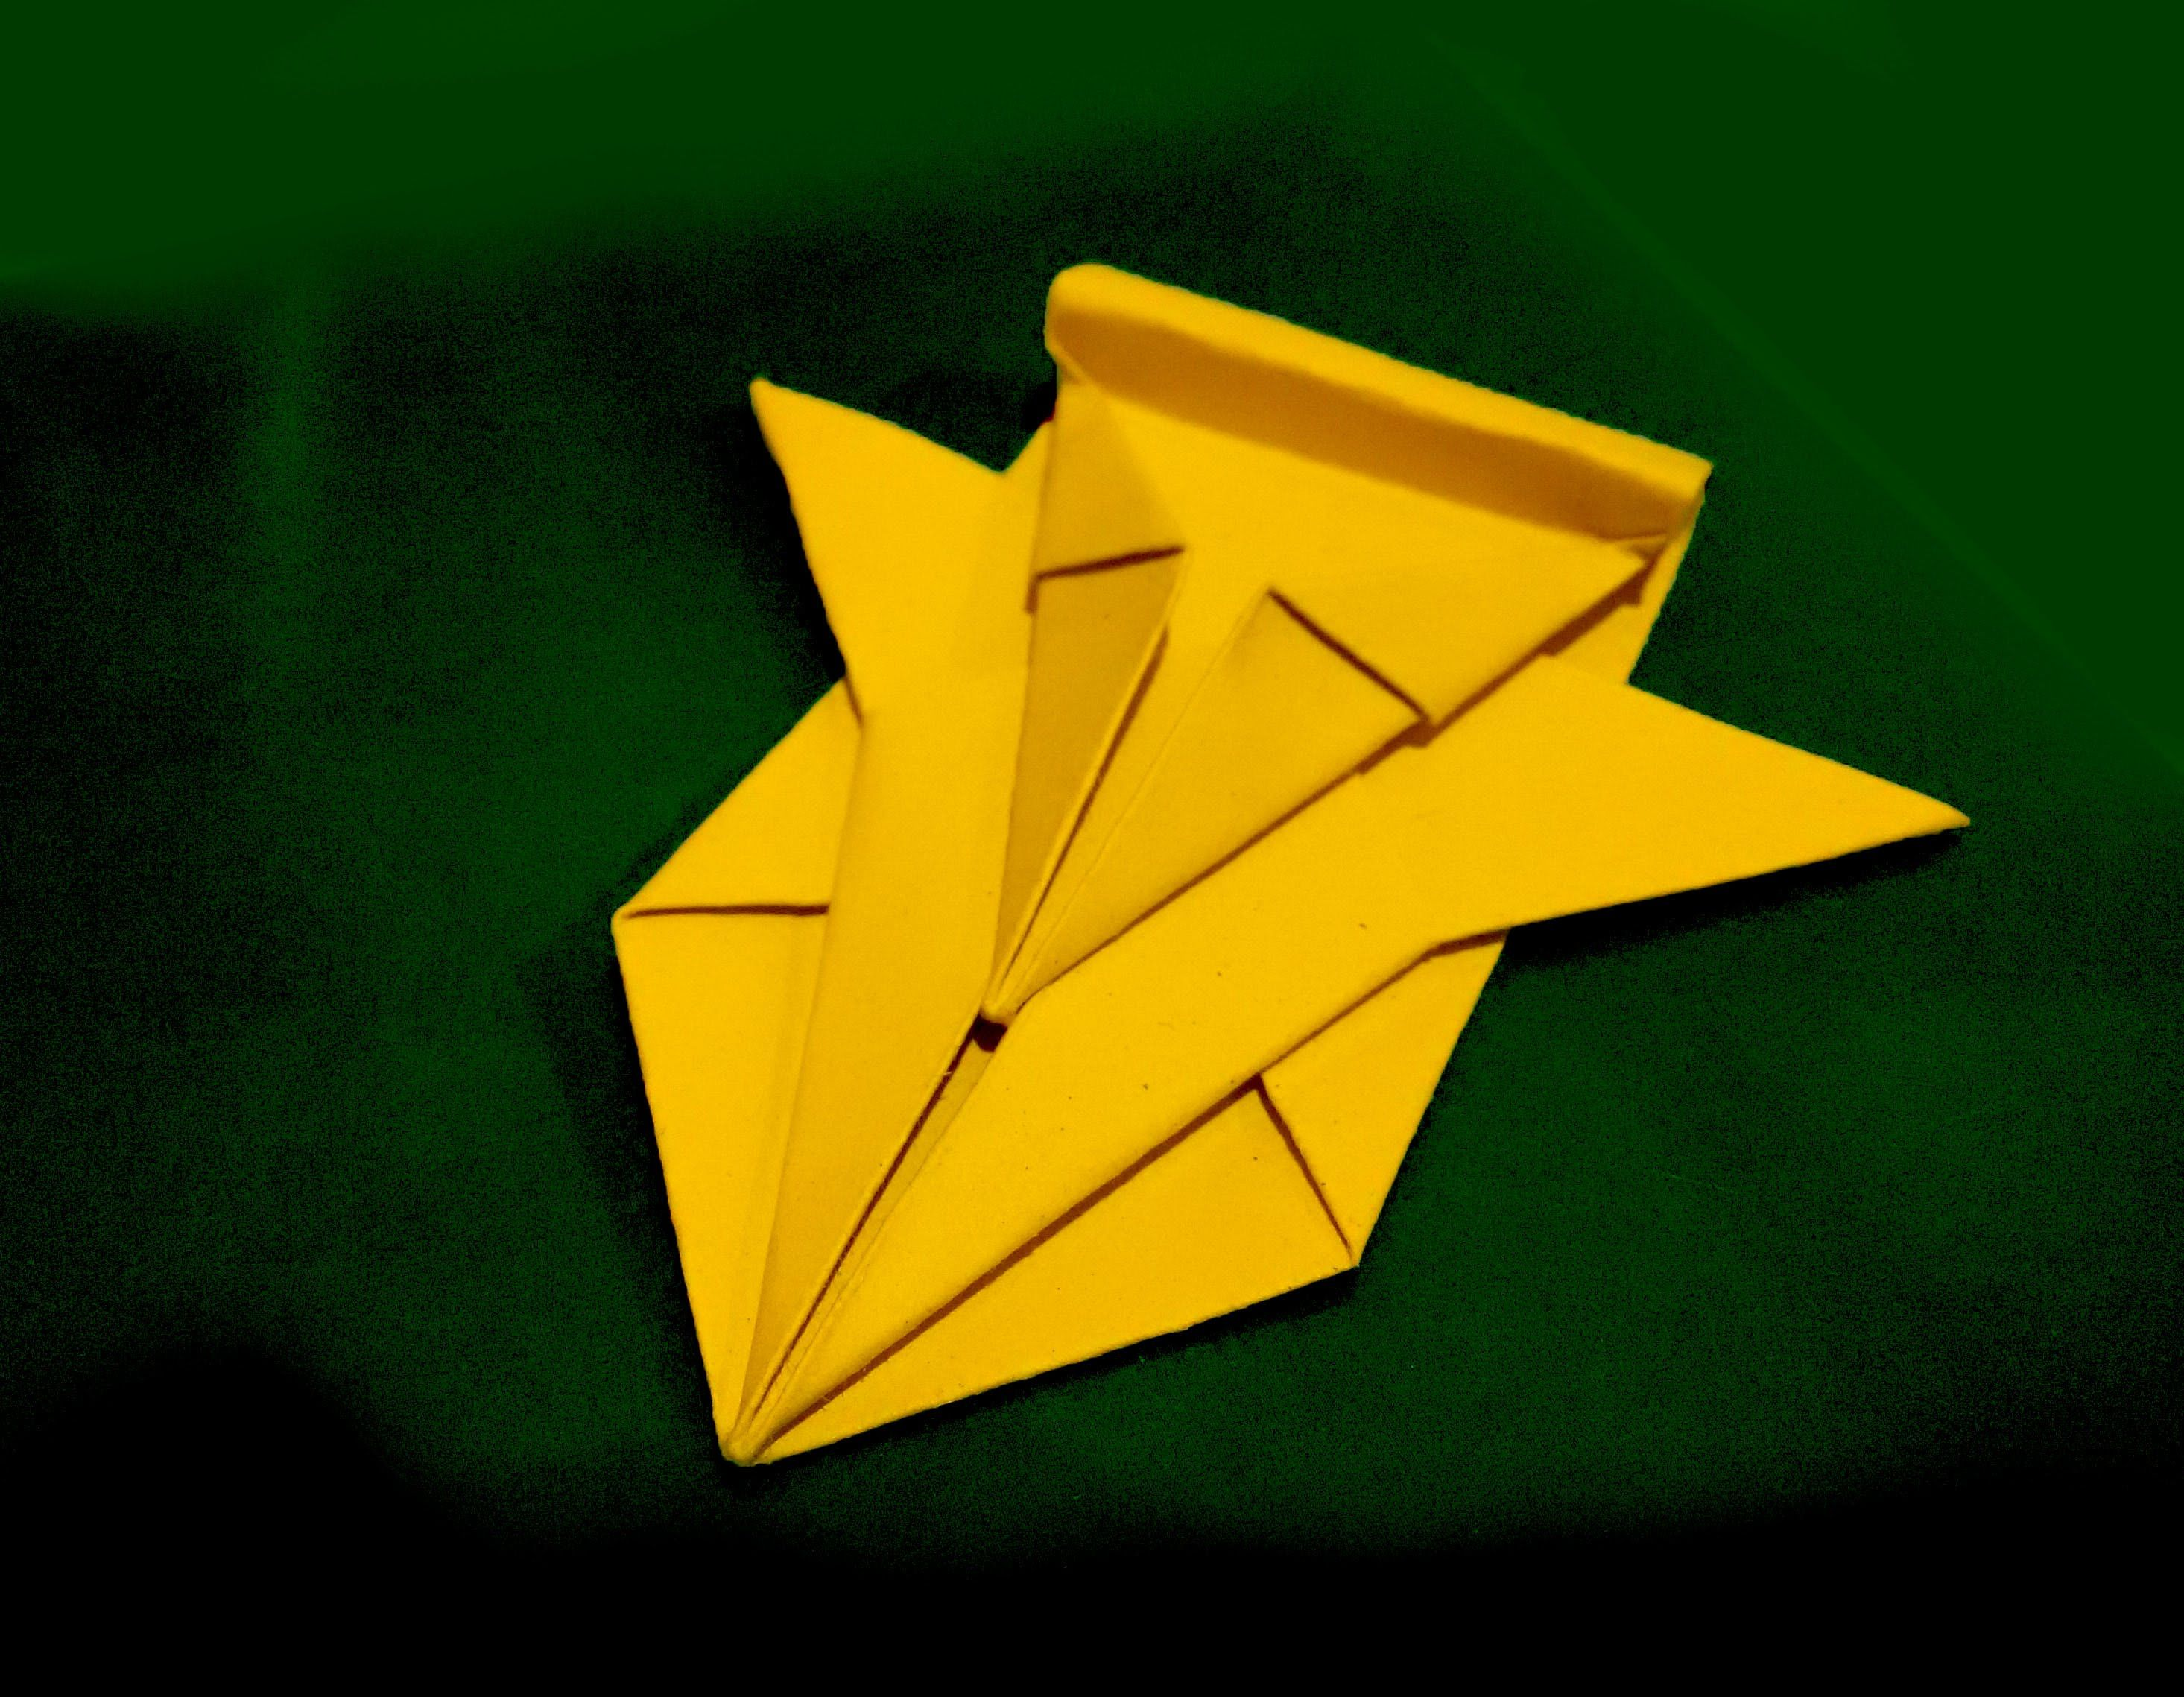 Awesome Paper Spaceship Easy To Do Origami Spacecraft Star Wars A List Of Online Diagrams For Folding Your Own